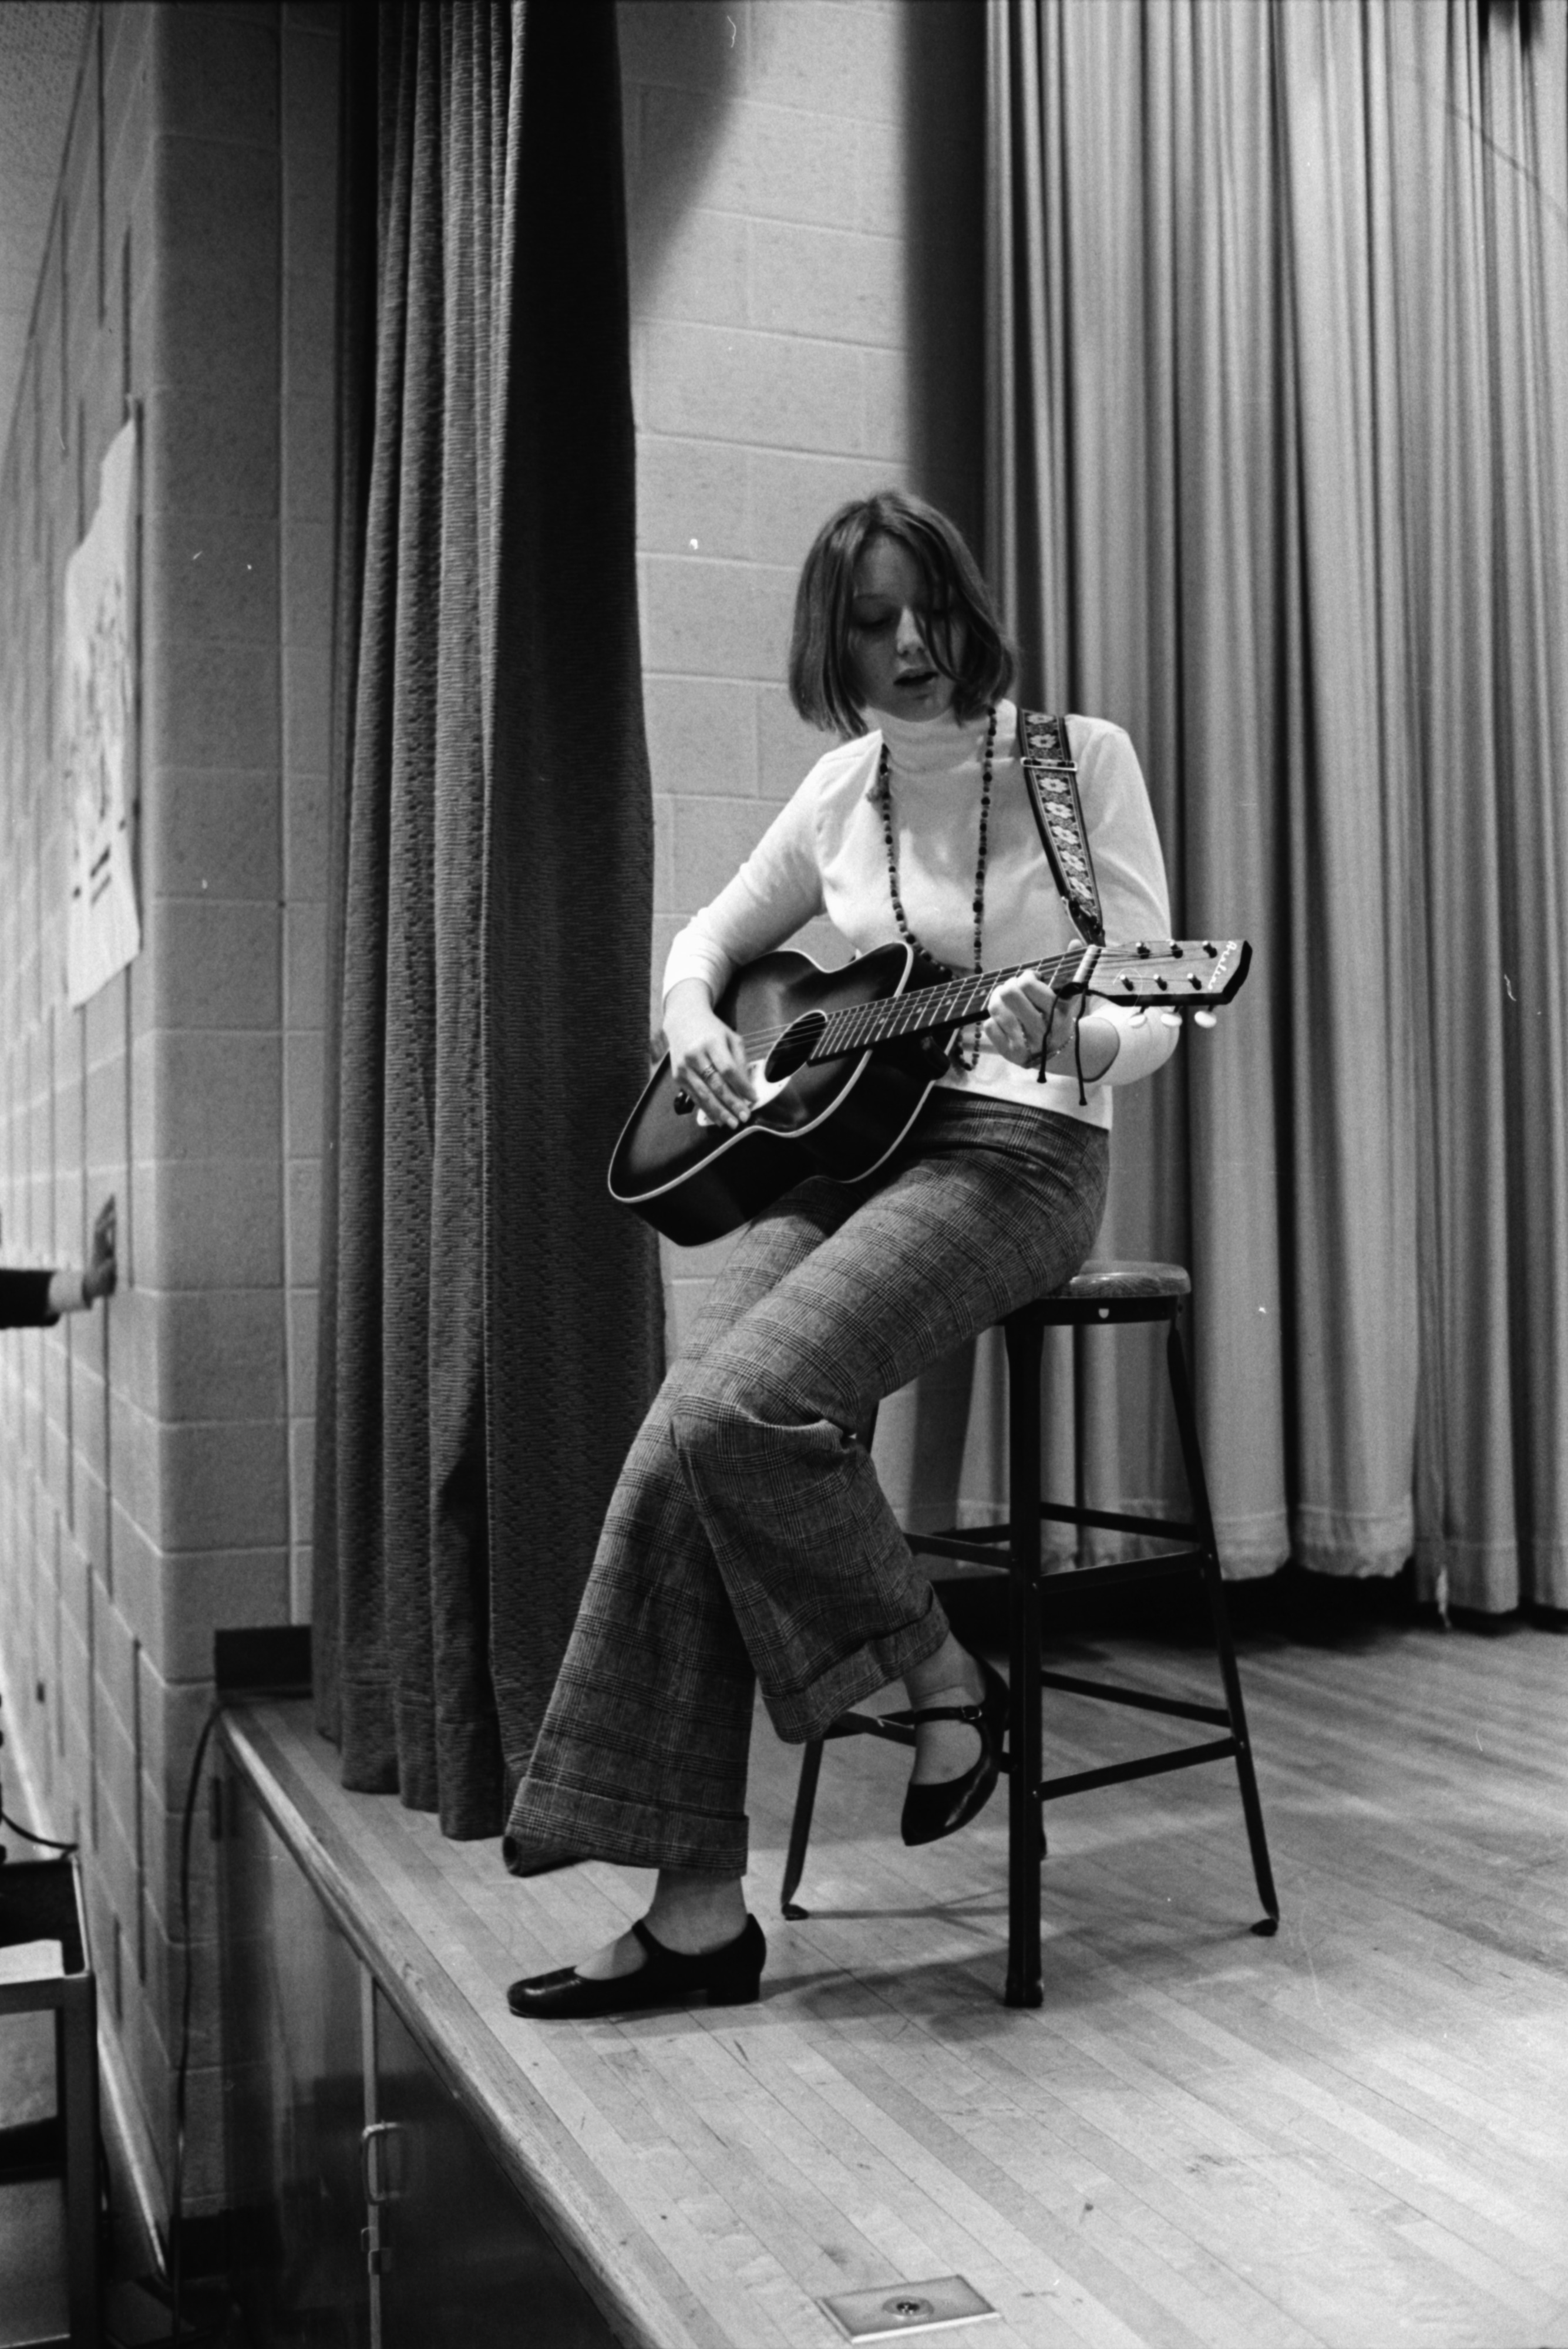 Guitarist at Forsythe Junior High School's Talent Show, January 1969 image